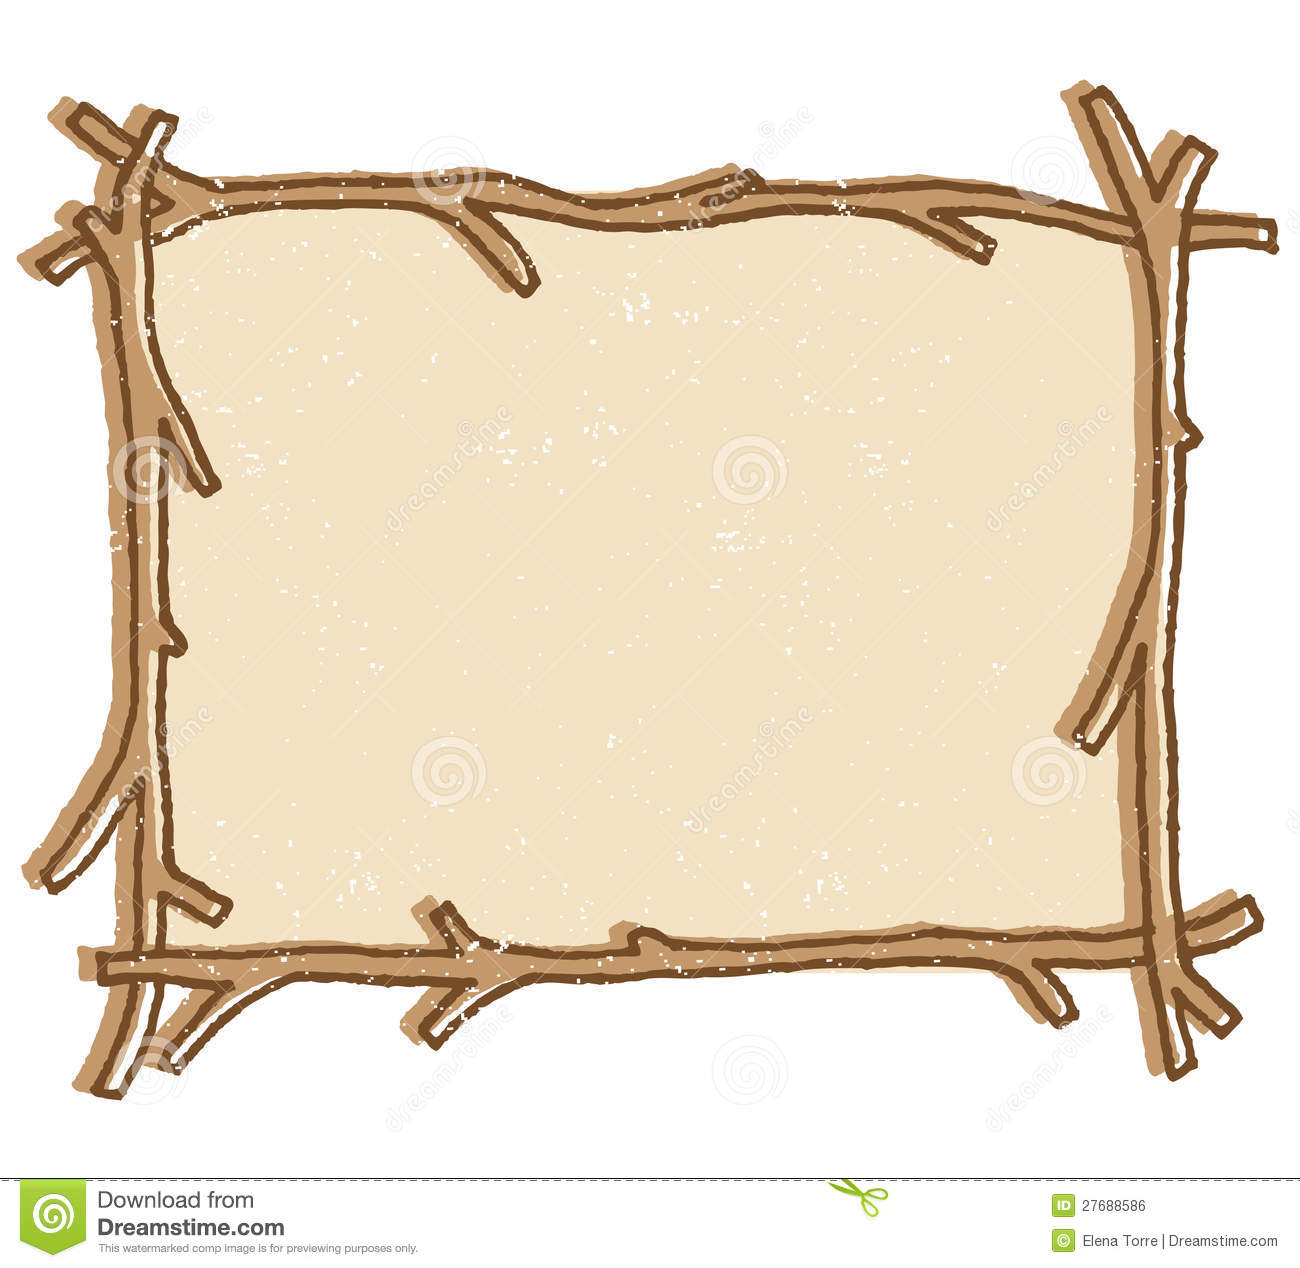 Illustration Of A Twig Stick Frame Isolated On A White Background